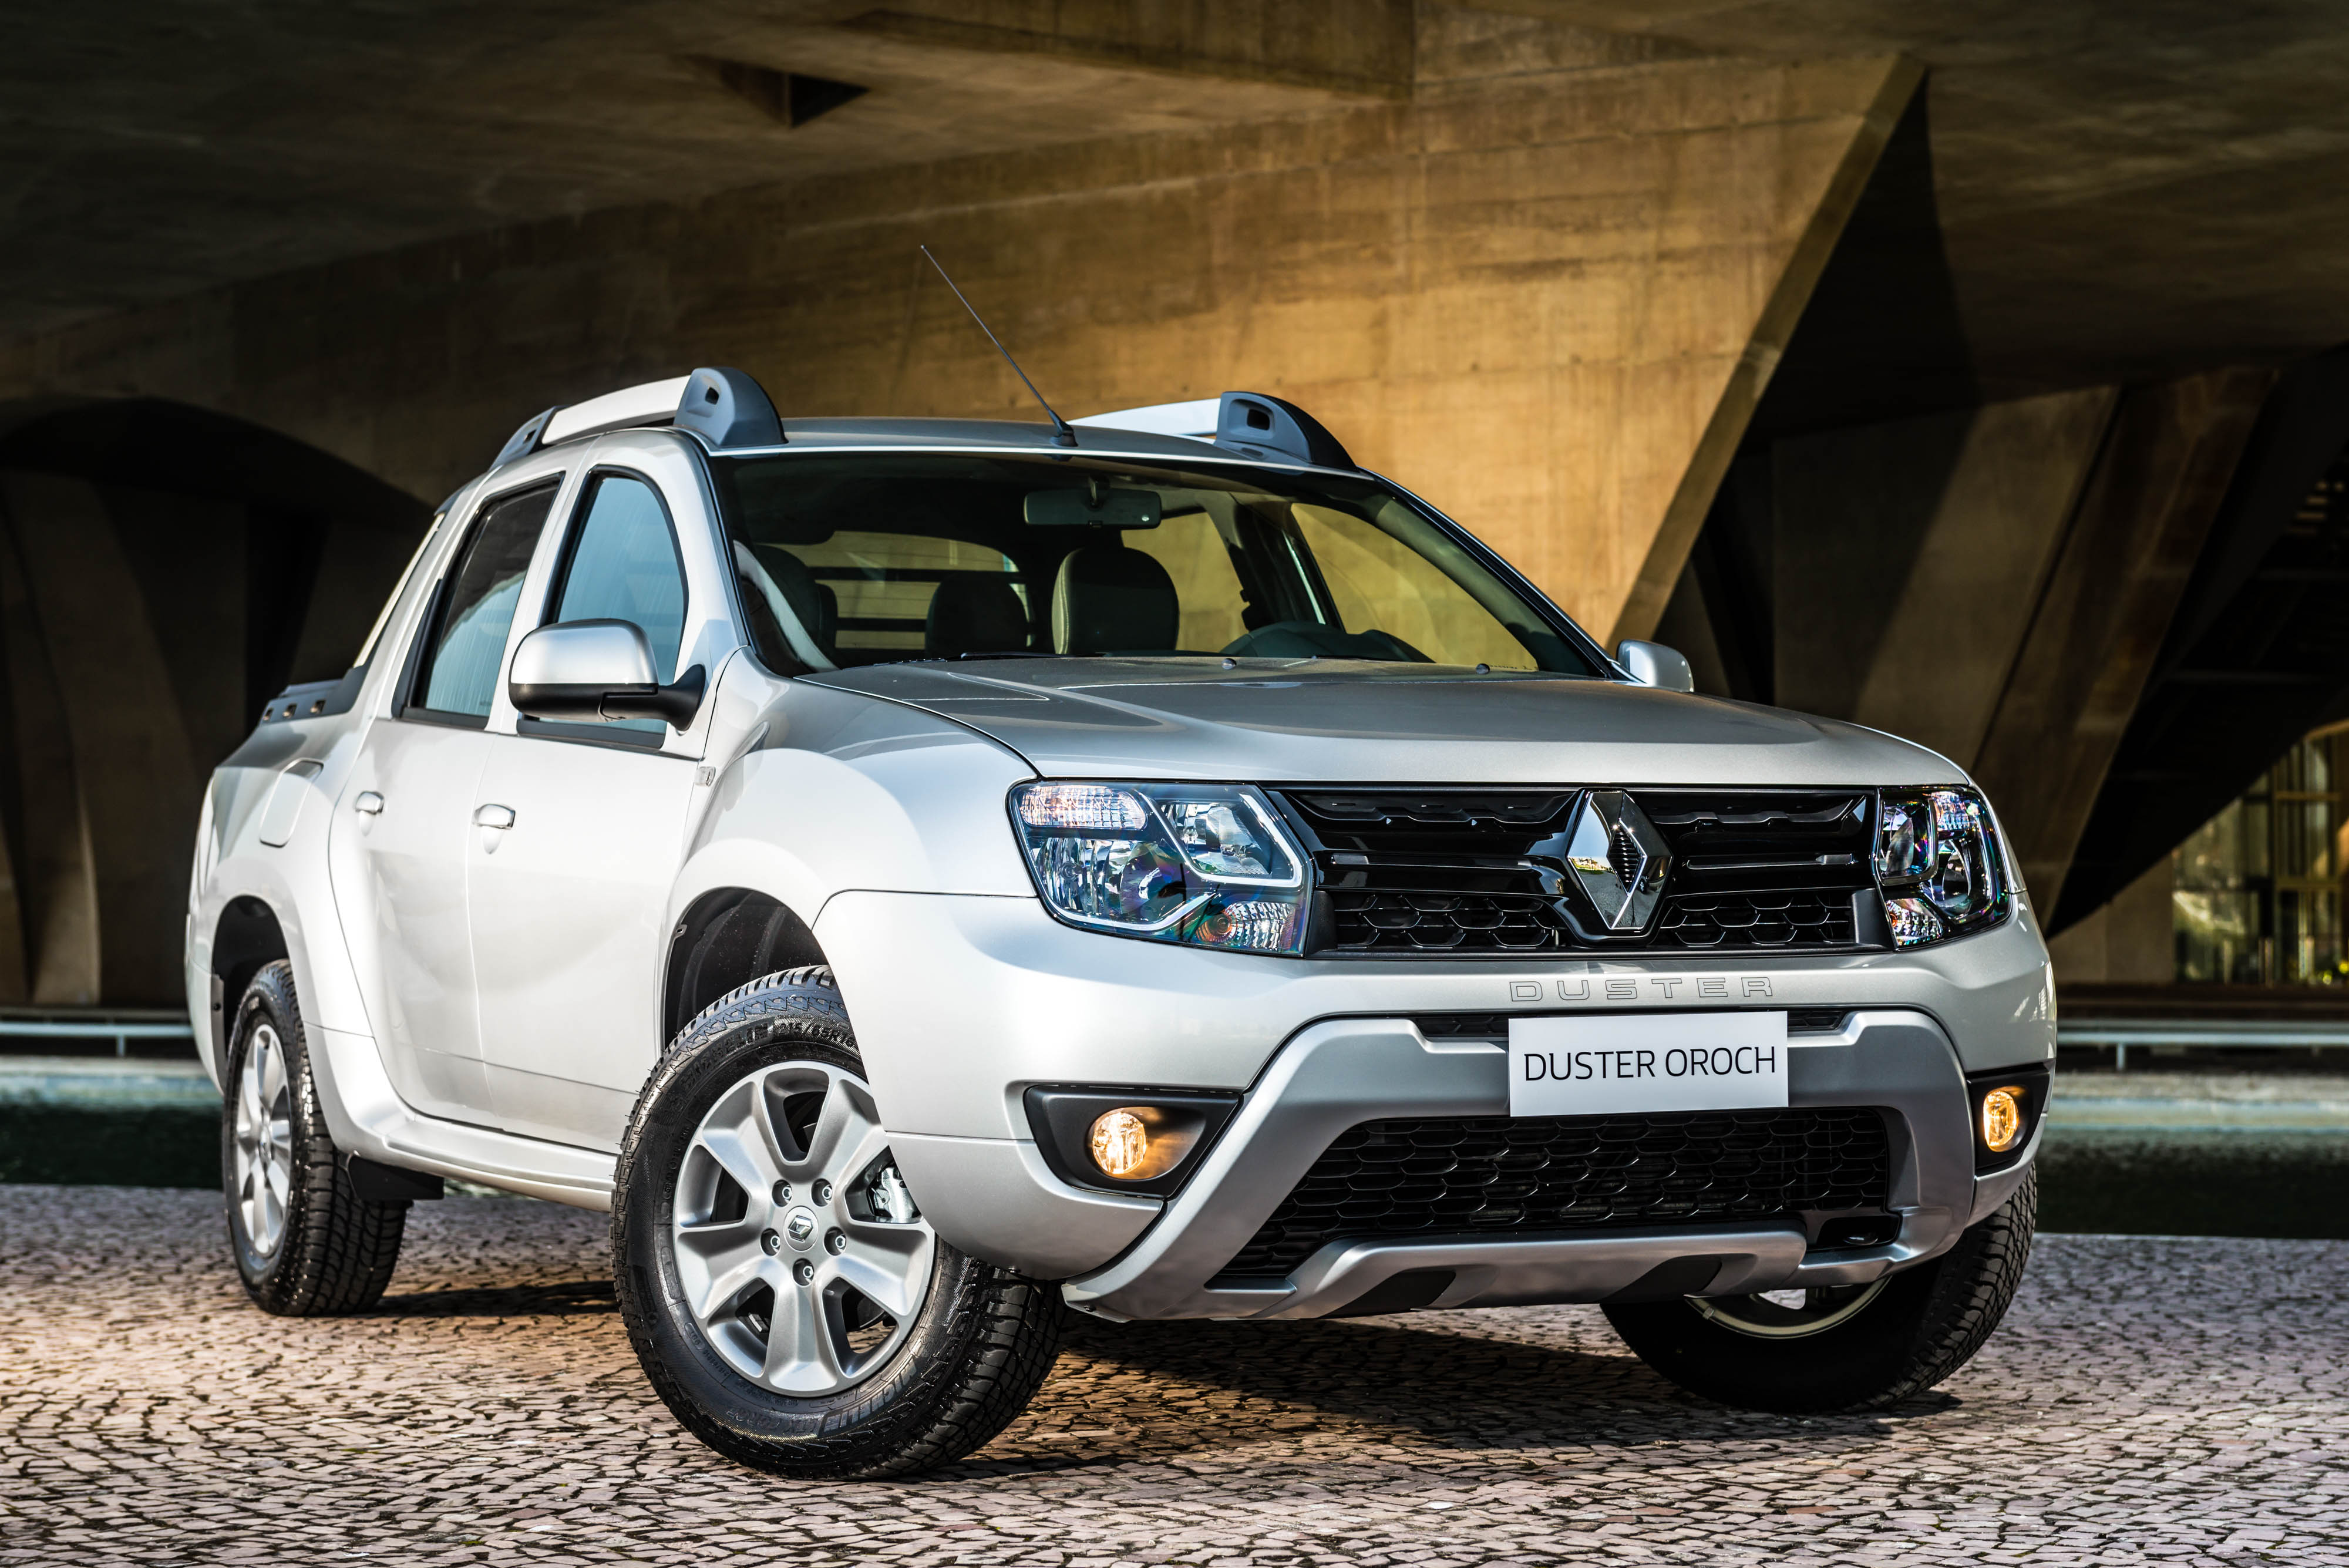 New Cars 2019 >> Renault press - Historic vehicles - Duster Oroch